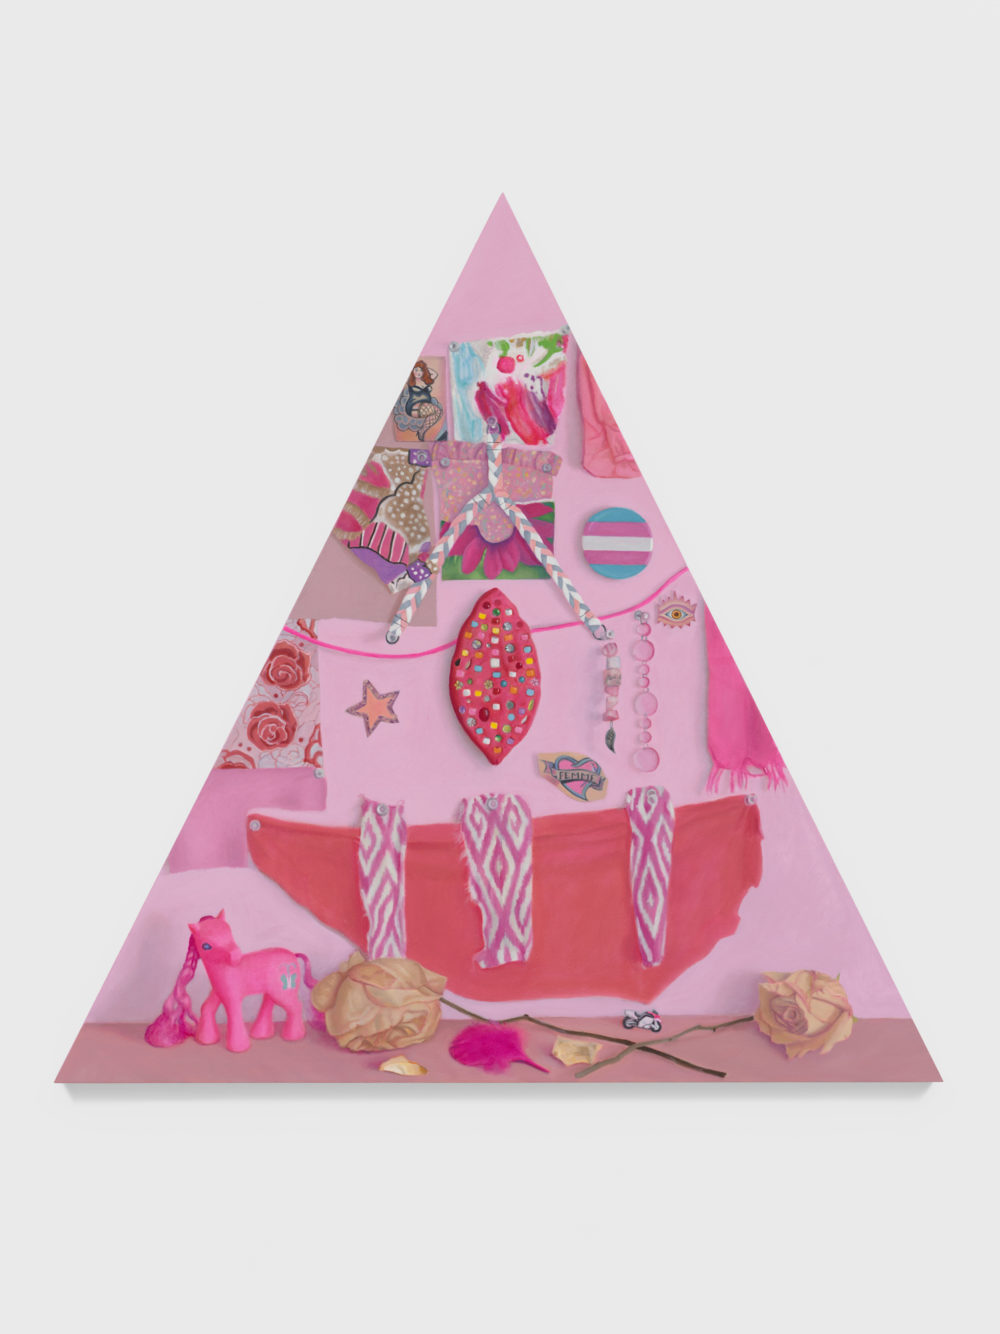 Pink triangle shaped canvas with altar items.